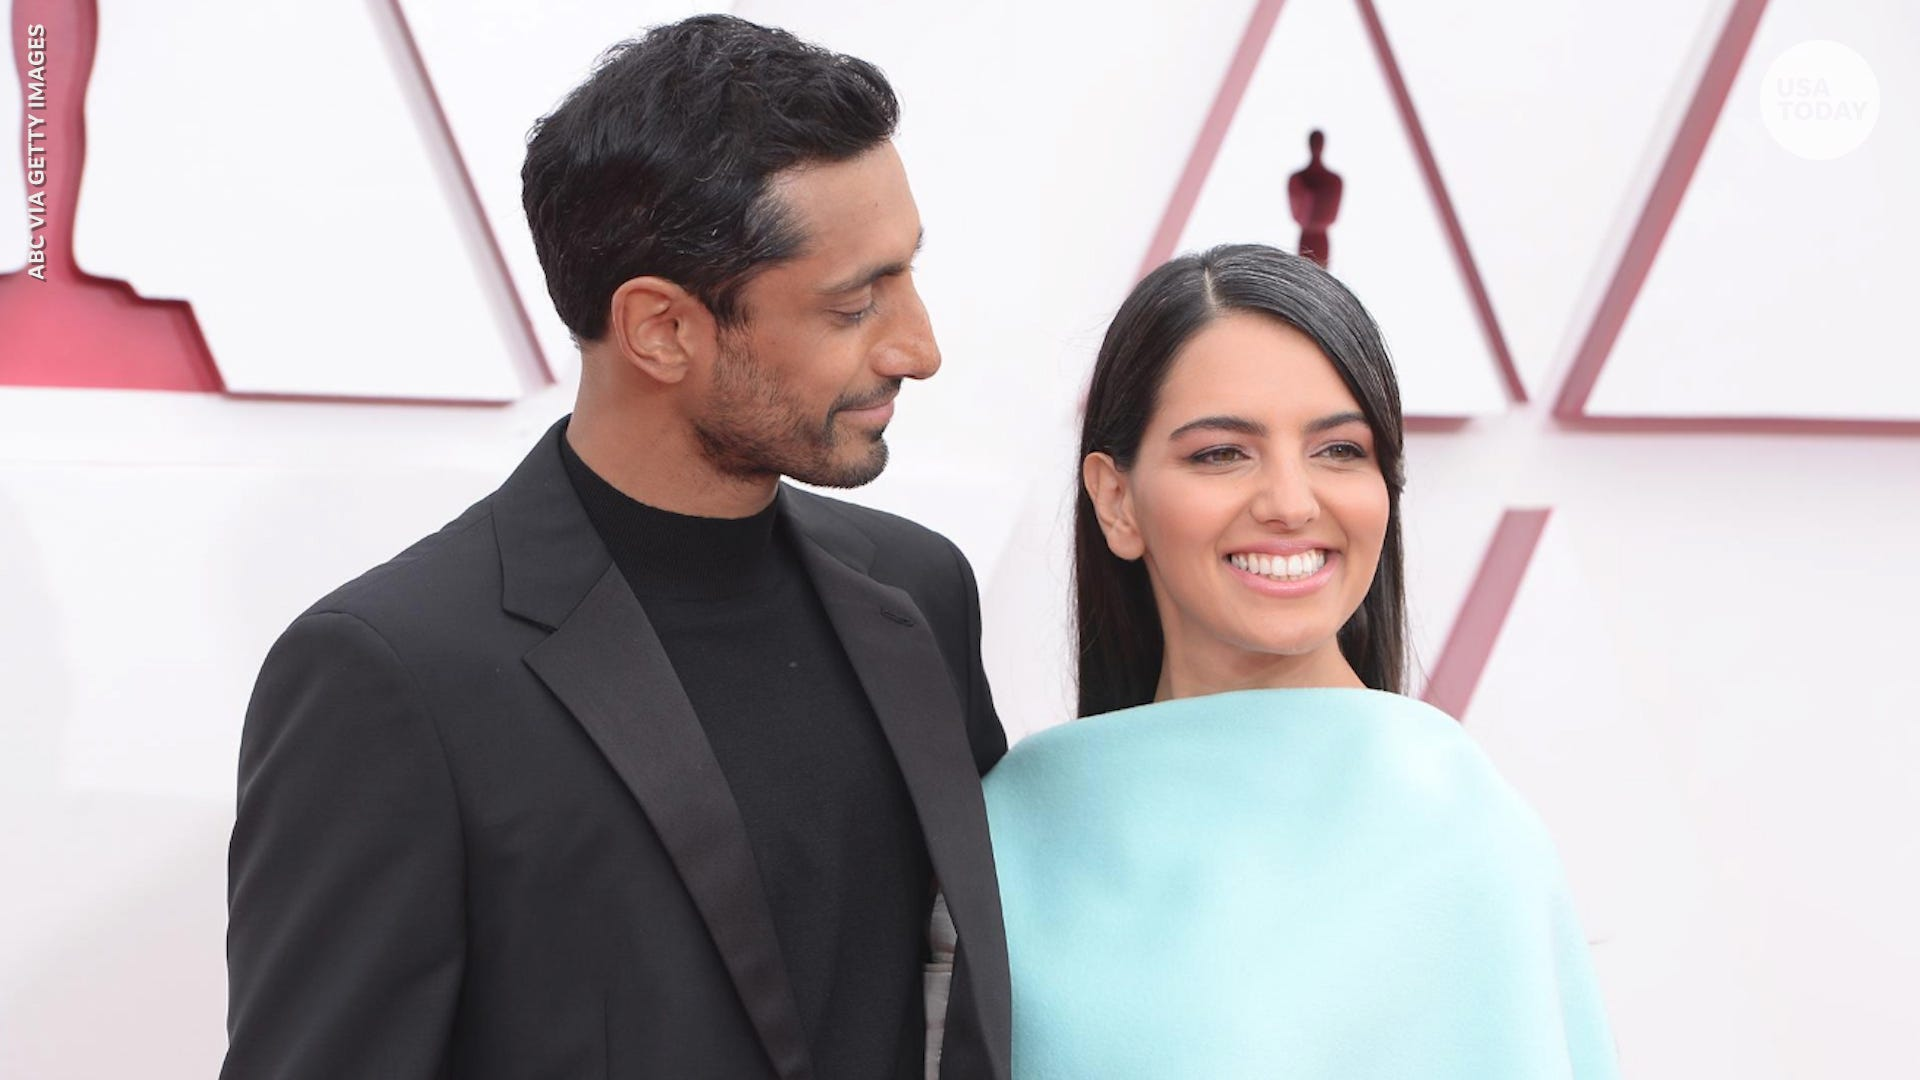 Swoon-worthy moment Riz Ahmed fixed wife's hair on Oscars red carpet